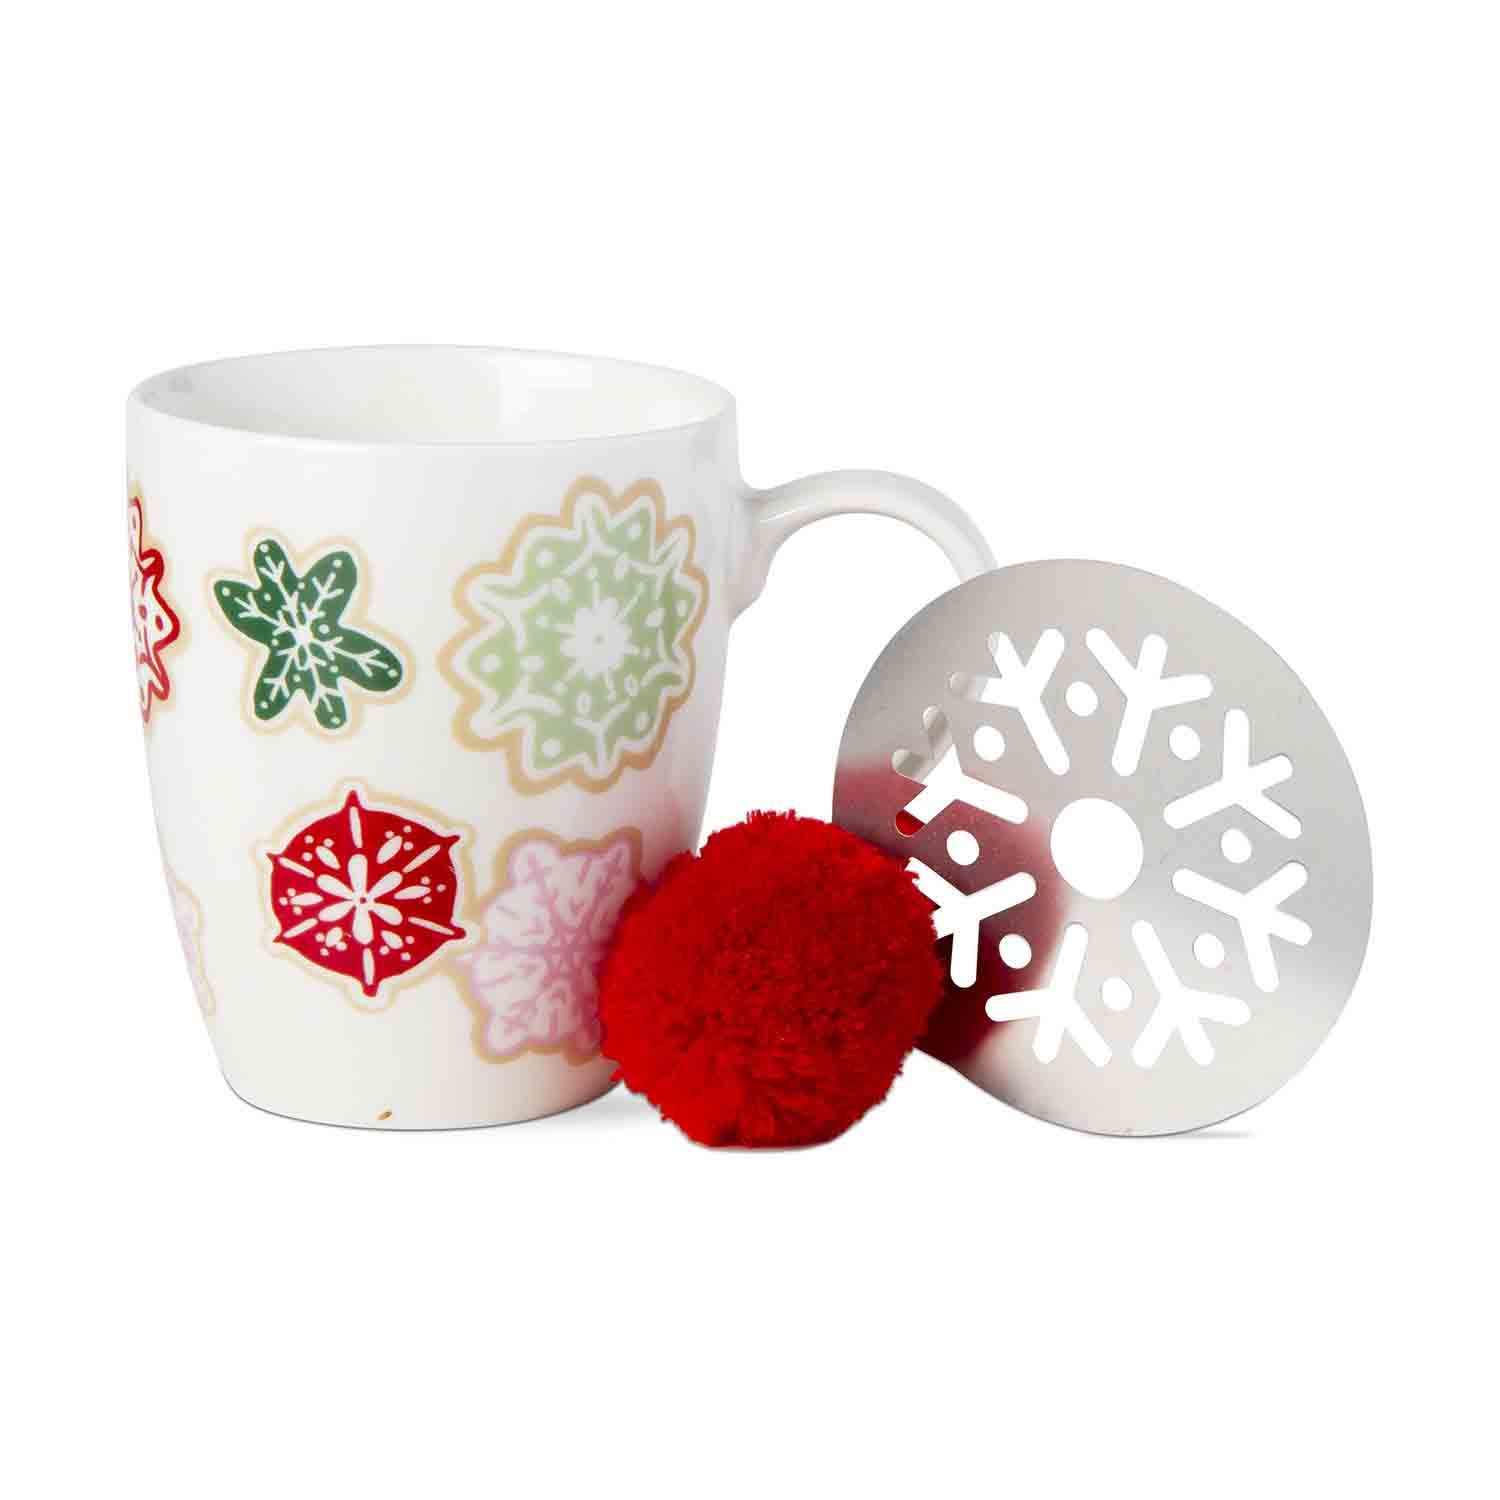 Snowflake Mug And Stencil Set